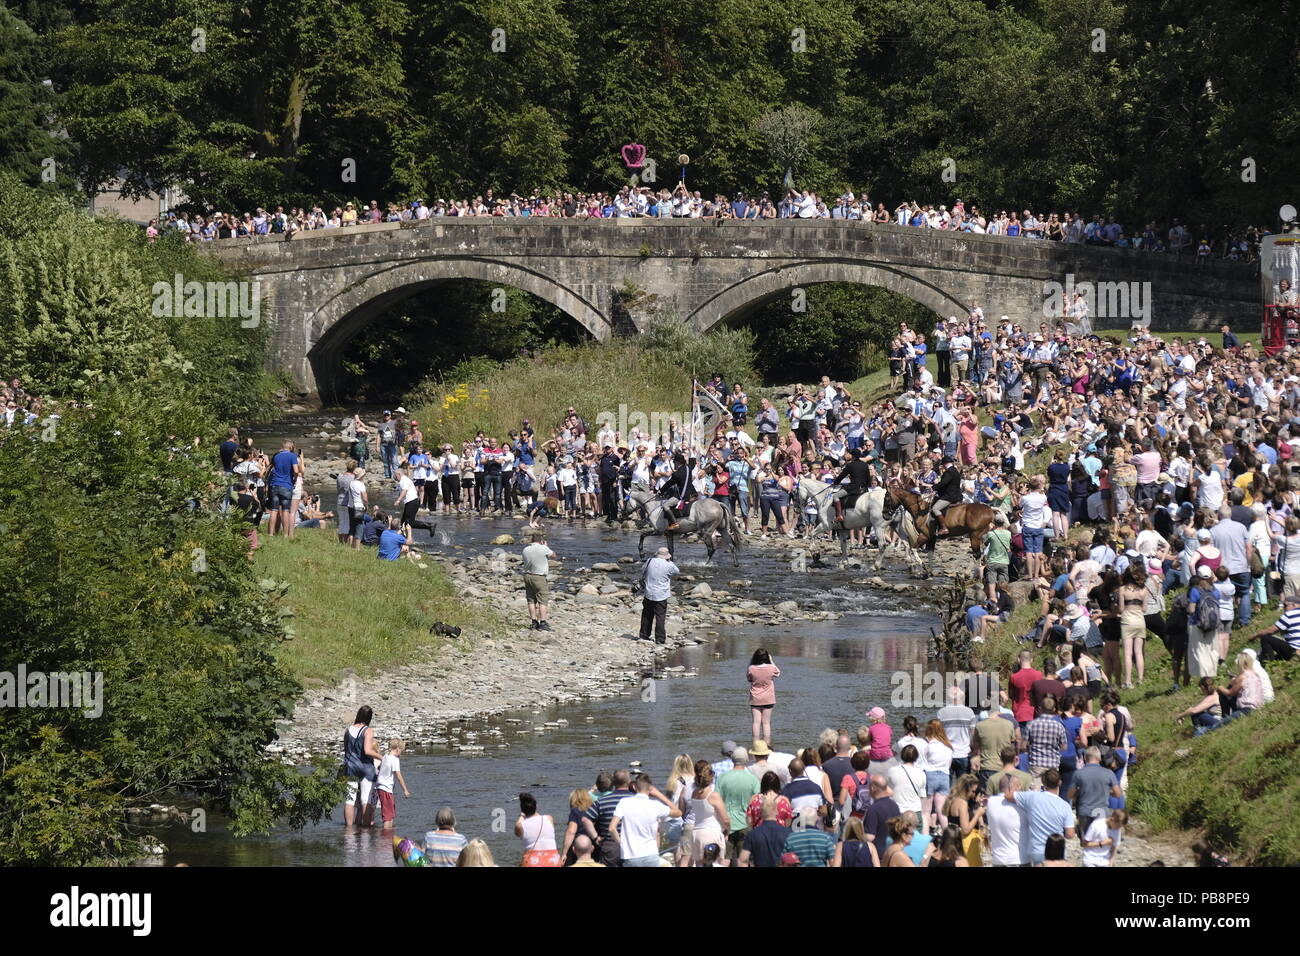 Langholm, Scotland, UK. 27th July, 2018.  Langholm Common Riding - 'Langholm's Great Day' the mounted supporters led by Langholm Cornet Iain Little and his Right-hand man Stuart Murray and Left-hand man Simon Tweddle fording the Ewes Water ahead of the cavalcade onto the Castleholm in Langholm, 'The Muckle Toon' has seen tradition upheld for over 250 years with the Annual Langholm Common Riding which takes place every year on the last Friday in July, This year falling on Friday 27th.   Credit: Rob Gray/Alamy Live News - Stock Image